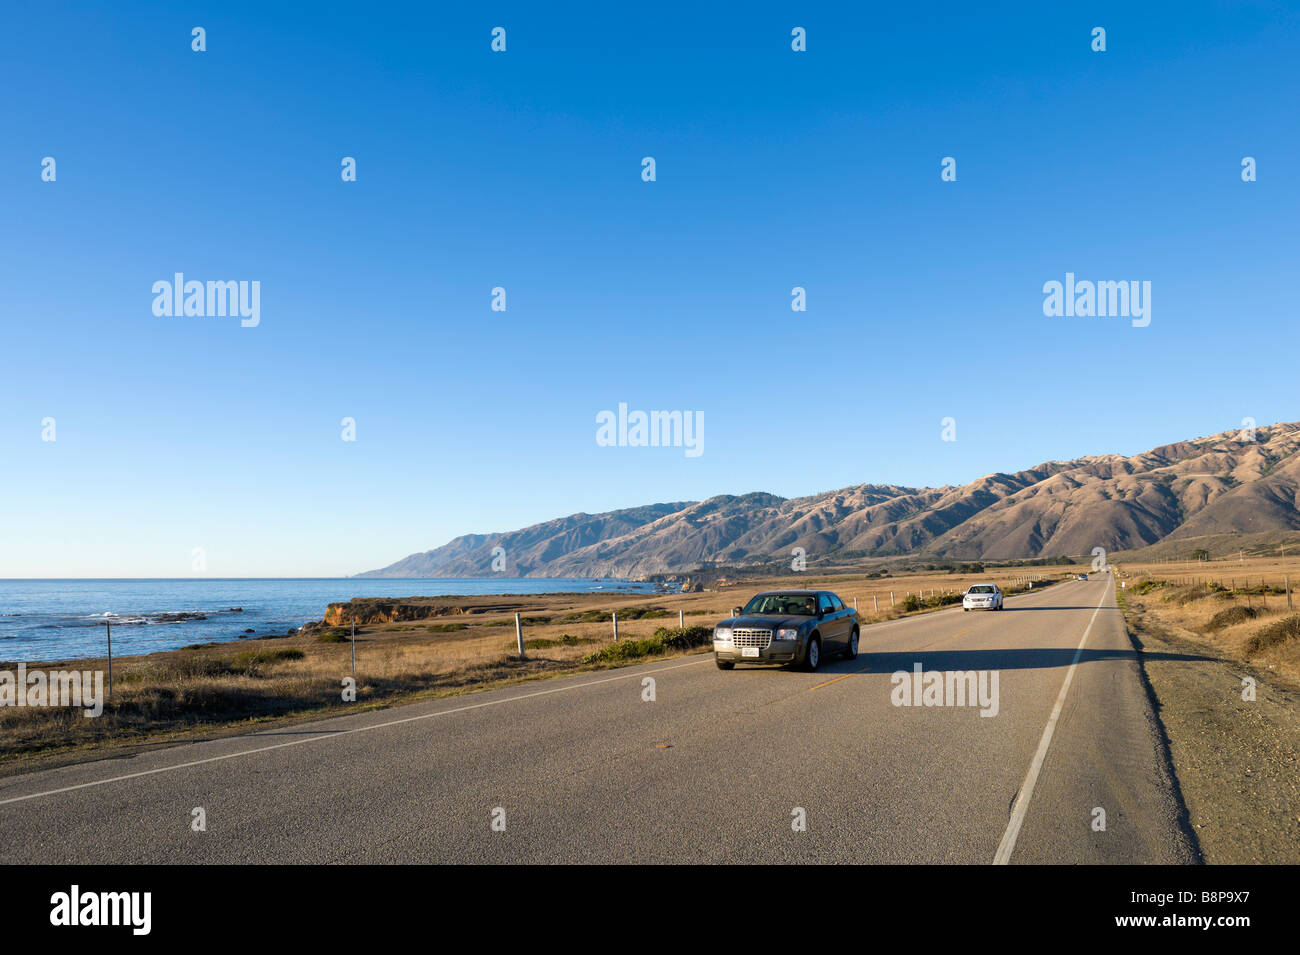 The Pacific Coast Highway or Cabrillo Highway (Highway 1) just south of the Santa Lucia Mountains, Central California, - Stock Image